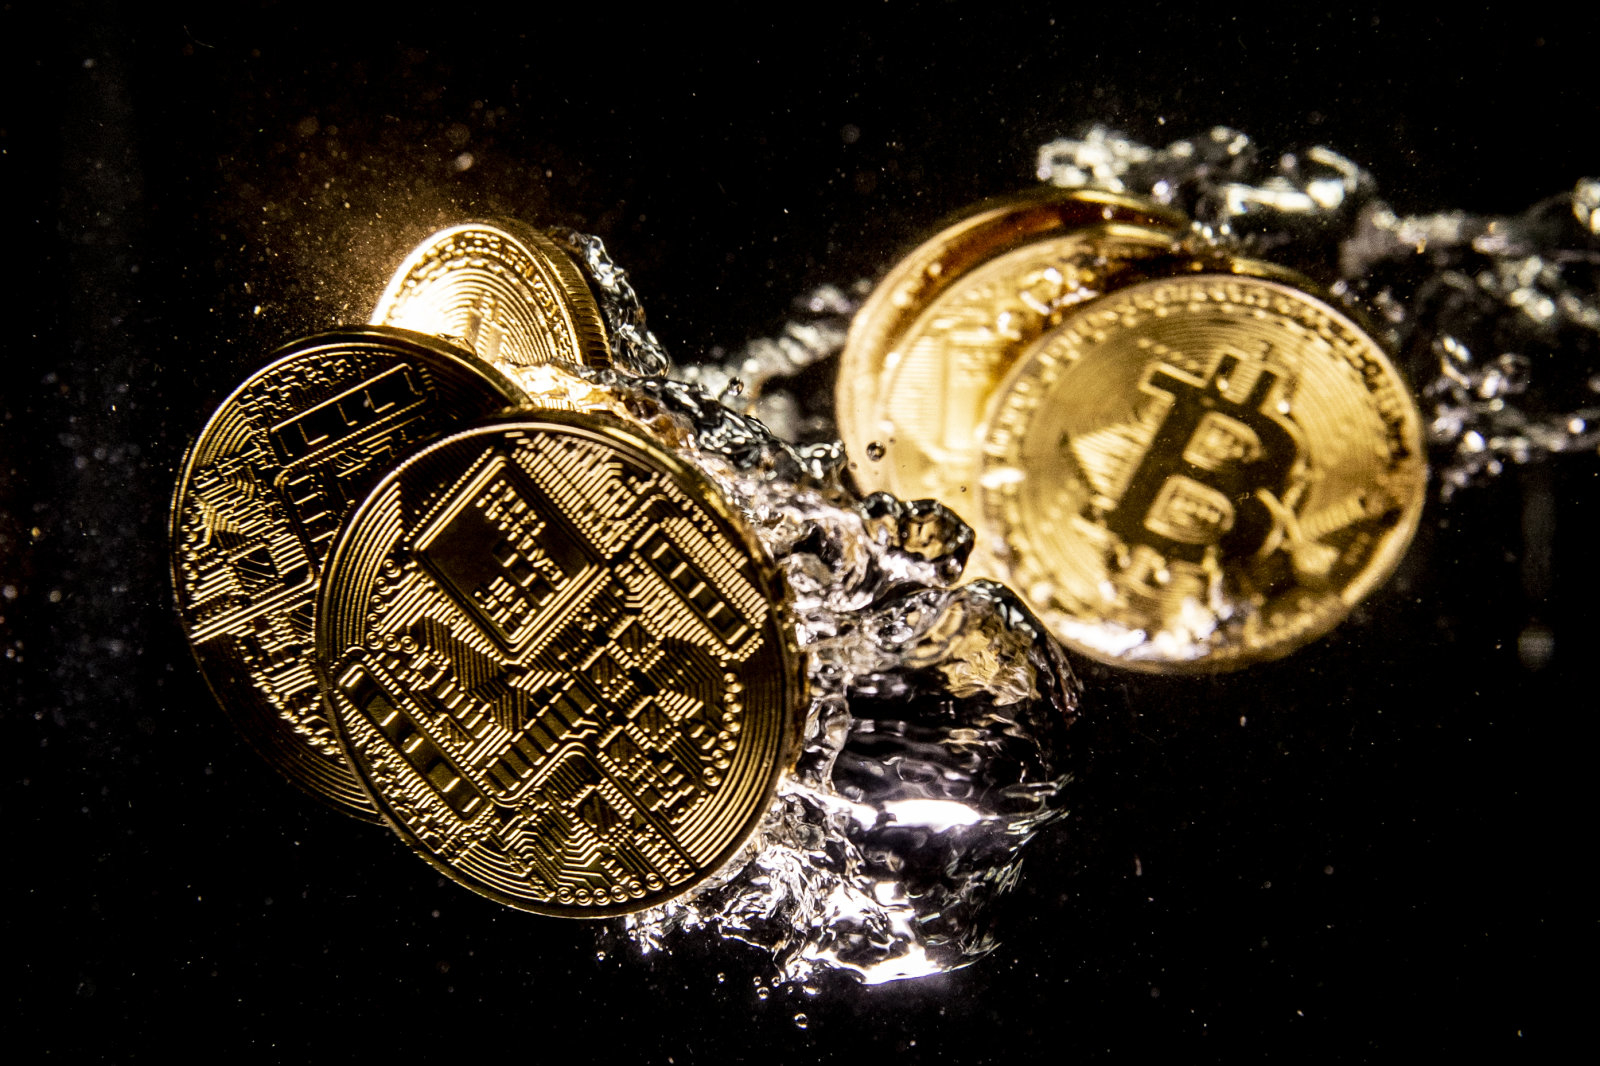 LONDON, ENGLAND - AUGUST 15: In this photo illustration a visual representation of the digital currency Bitcoin sinks into water on August 15, 2018 in London, England. Most digital currencies including Bitcoin, (BTC) Ethereum, (ETH) Ripple (XRP) and Stella (XLM) have seen a dramatic fall in their prices throughout 2018 amid a 'mass sell-off'. In December 2017 the price of BTC hit $20,000 USD but has since fallen to around $6000 USD.   (Photo Illustration by Dan Kitwood/Getty Images)